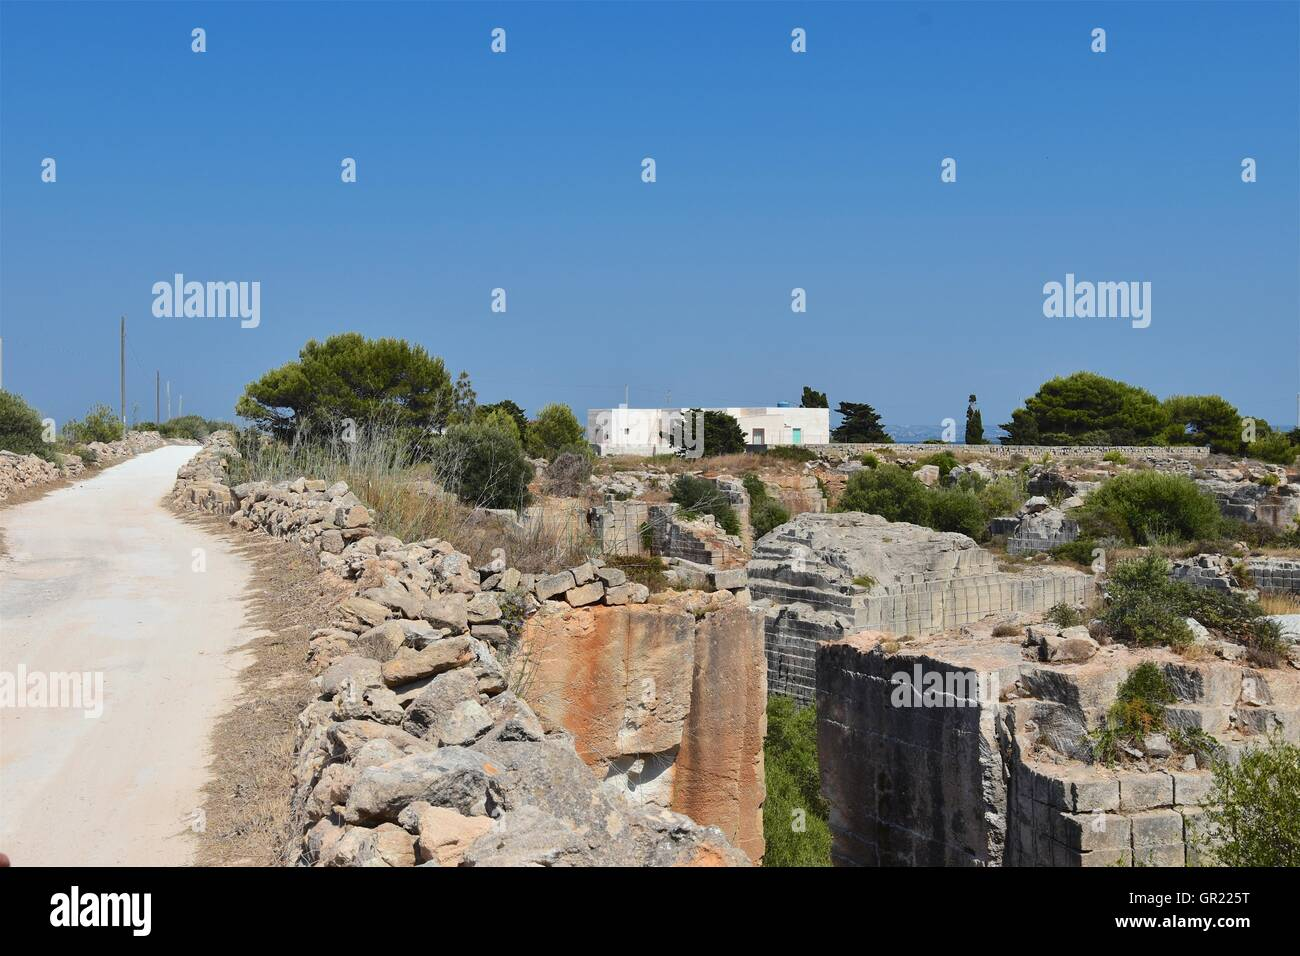 Road though desert landscape with mountains. Favignana, Sicily, Italy - Stock Image